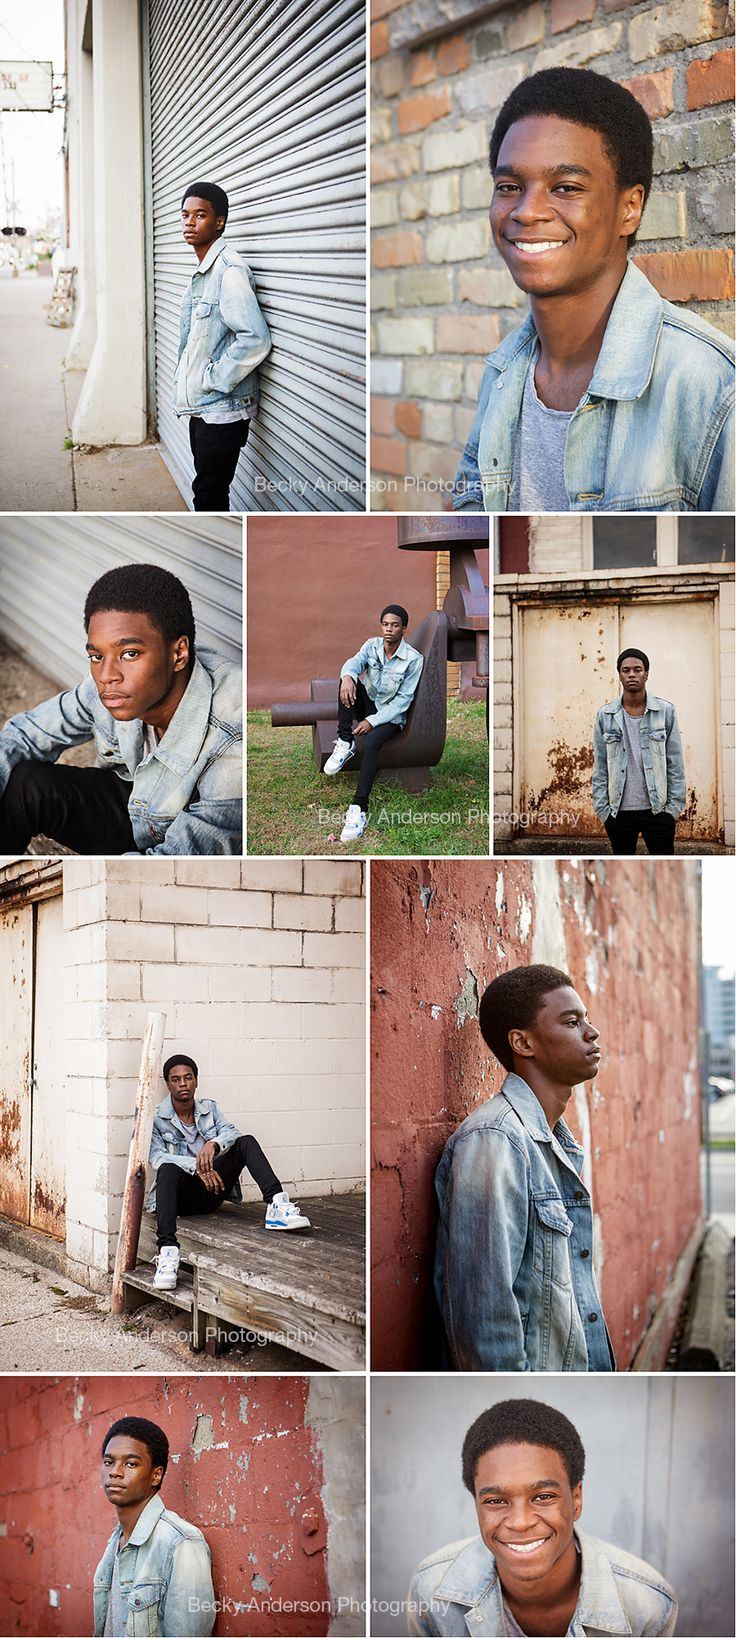 Meet Djuan - Portage Northern Senior - Class of 2014 #senior #boy # portraits #posing